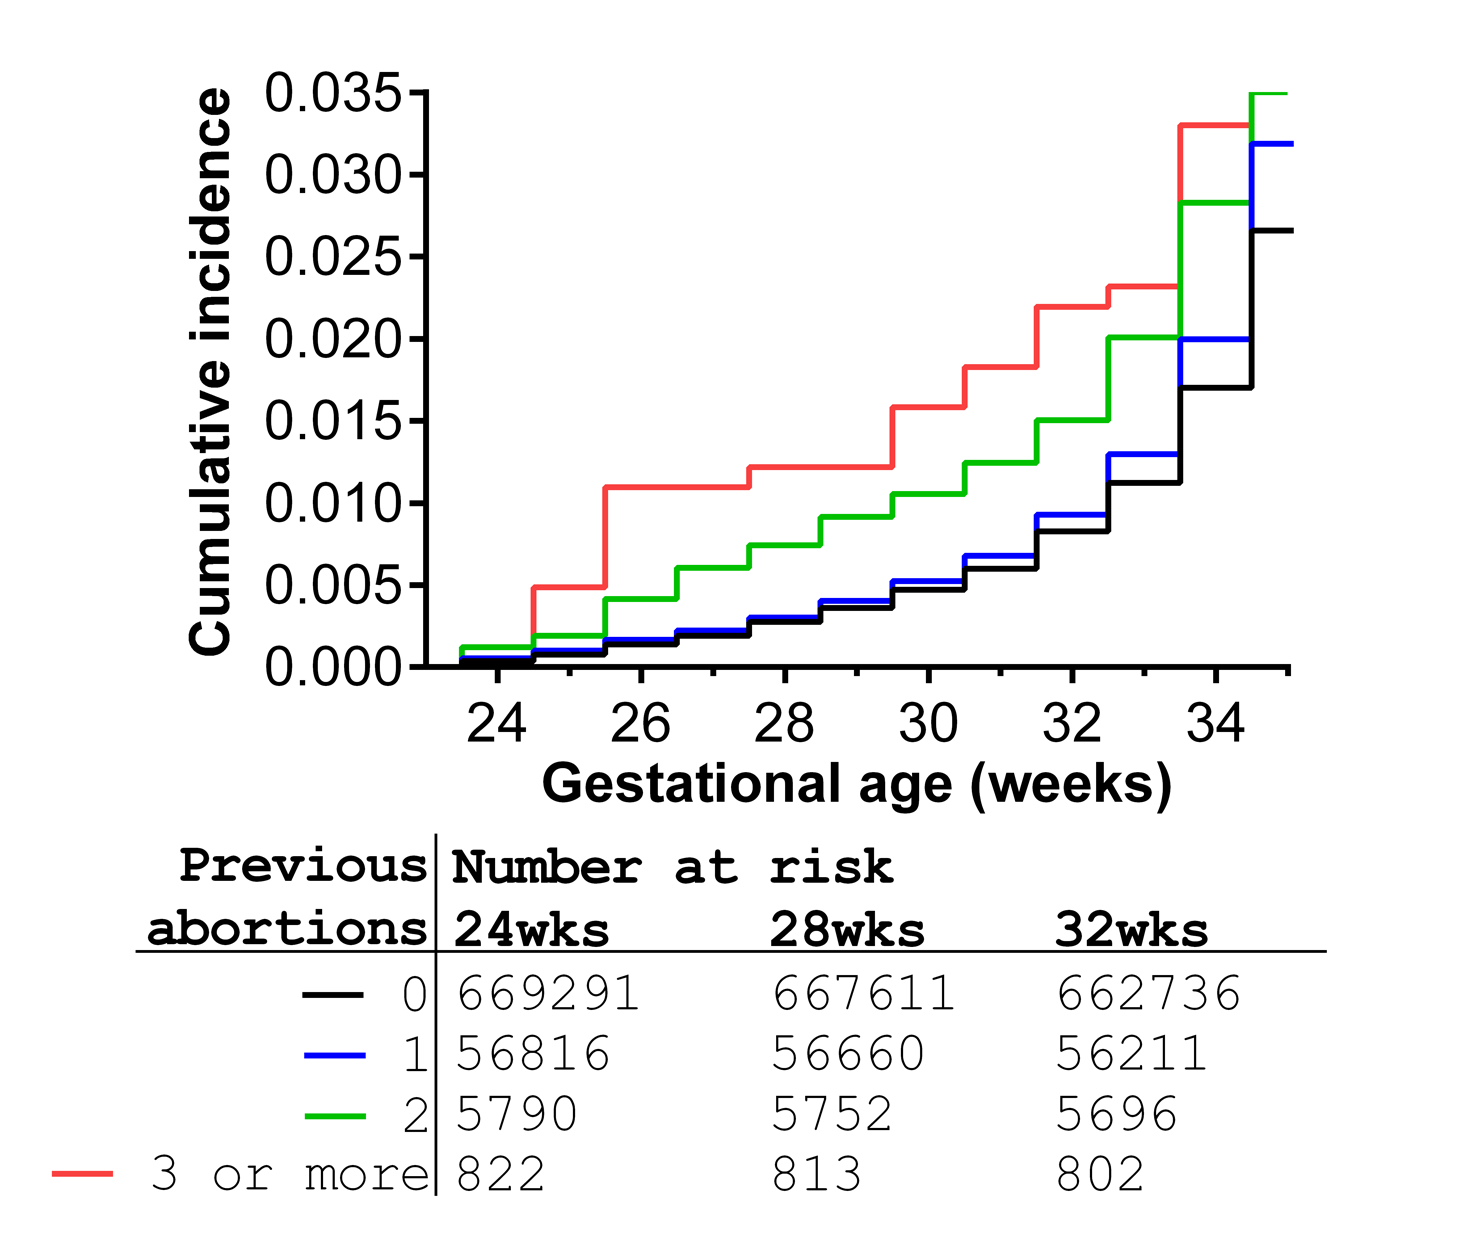 Cumulative incidence of preterm birth from 24 wk onwards in relation to number of previous abortions for 732,719 nulliparous women, Scotland 1980–2008.